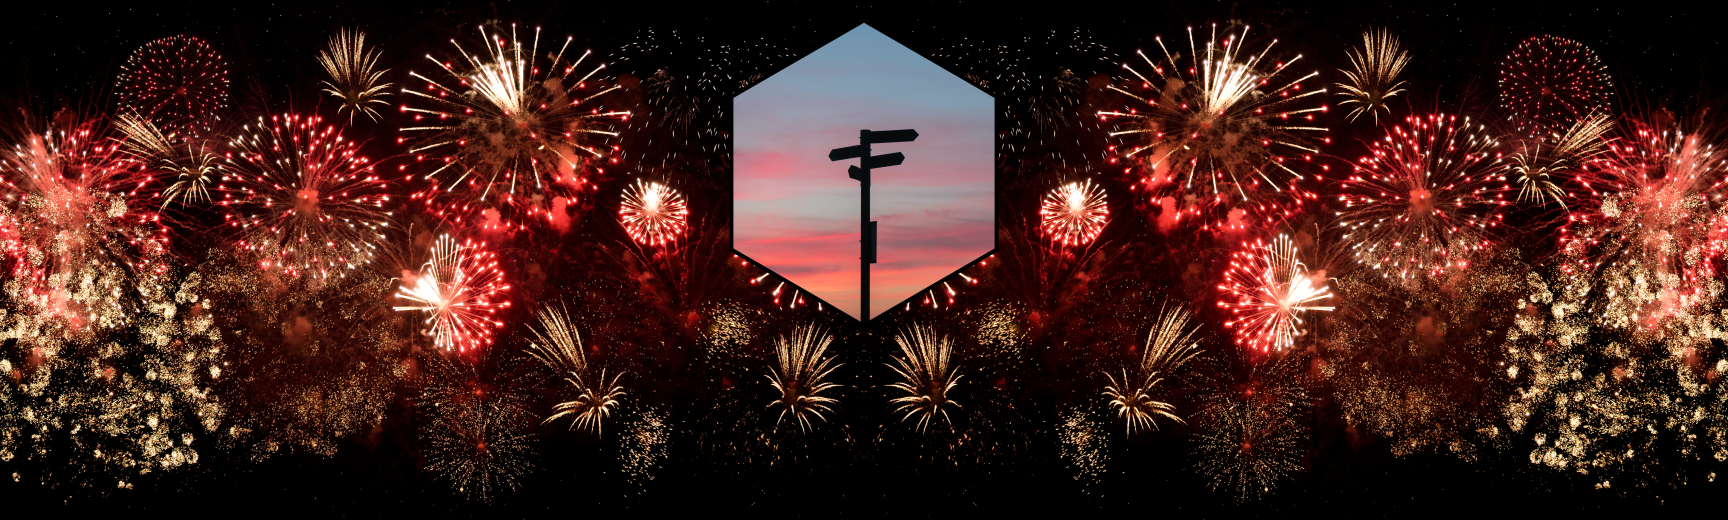 Fireworks and Signpost